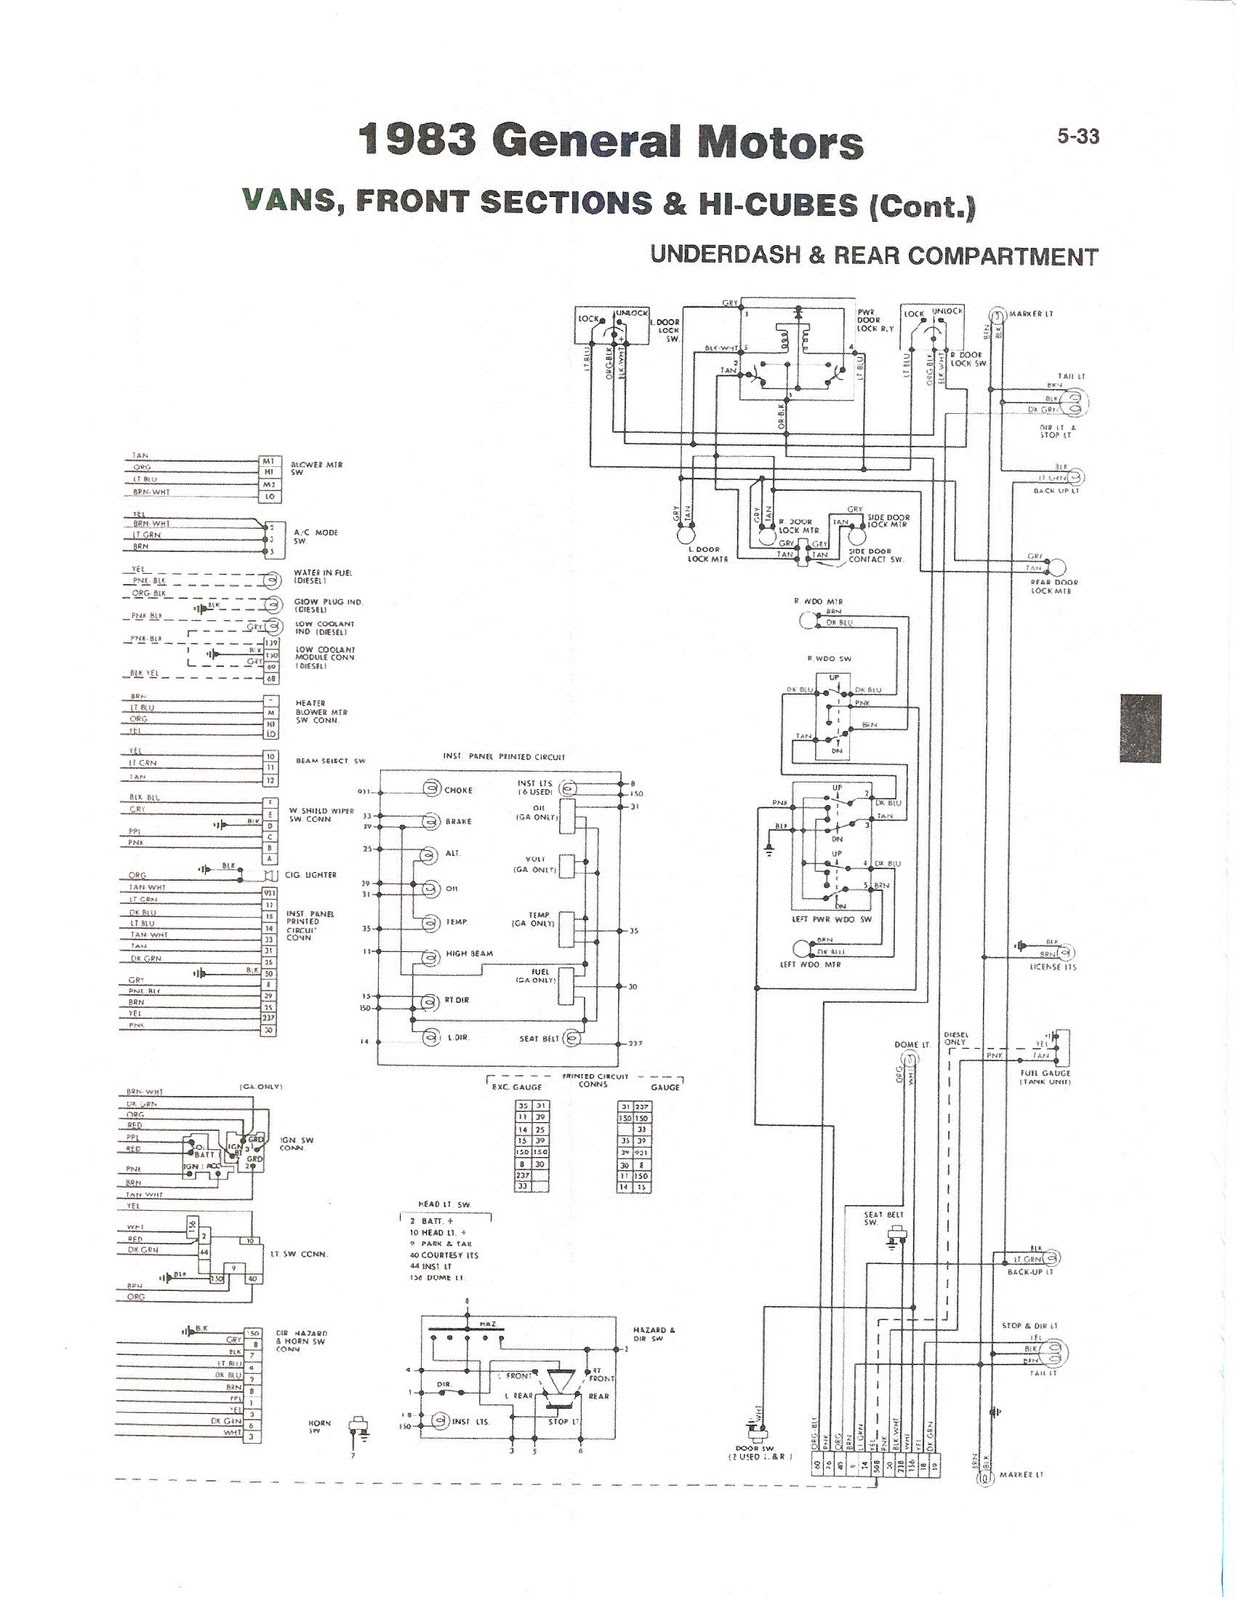 2007 Fleetwood Wiring Diagram - Search For Wiring Diagrams • on coleman fleetwood battery, coleman camper wiring, coleman westlake wiring-diagram,